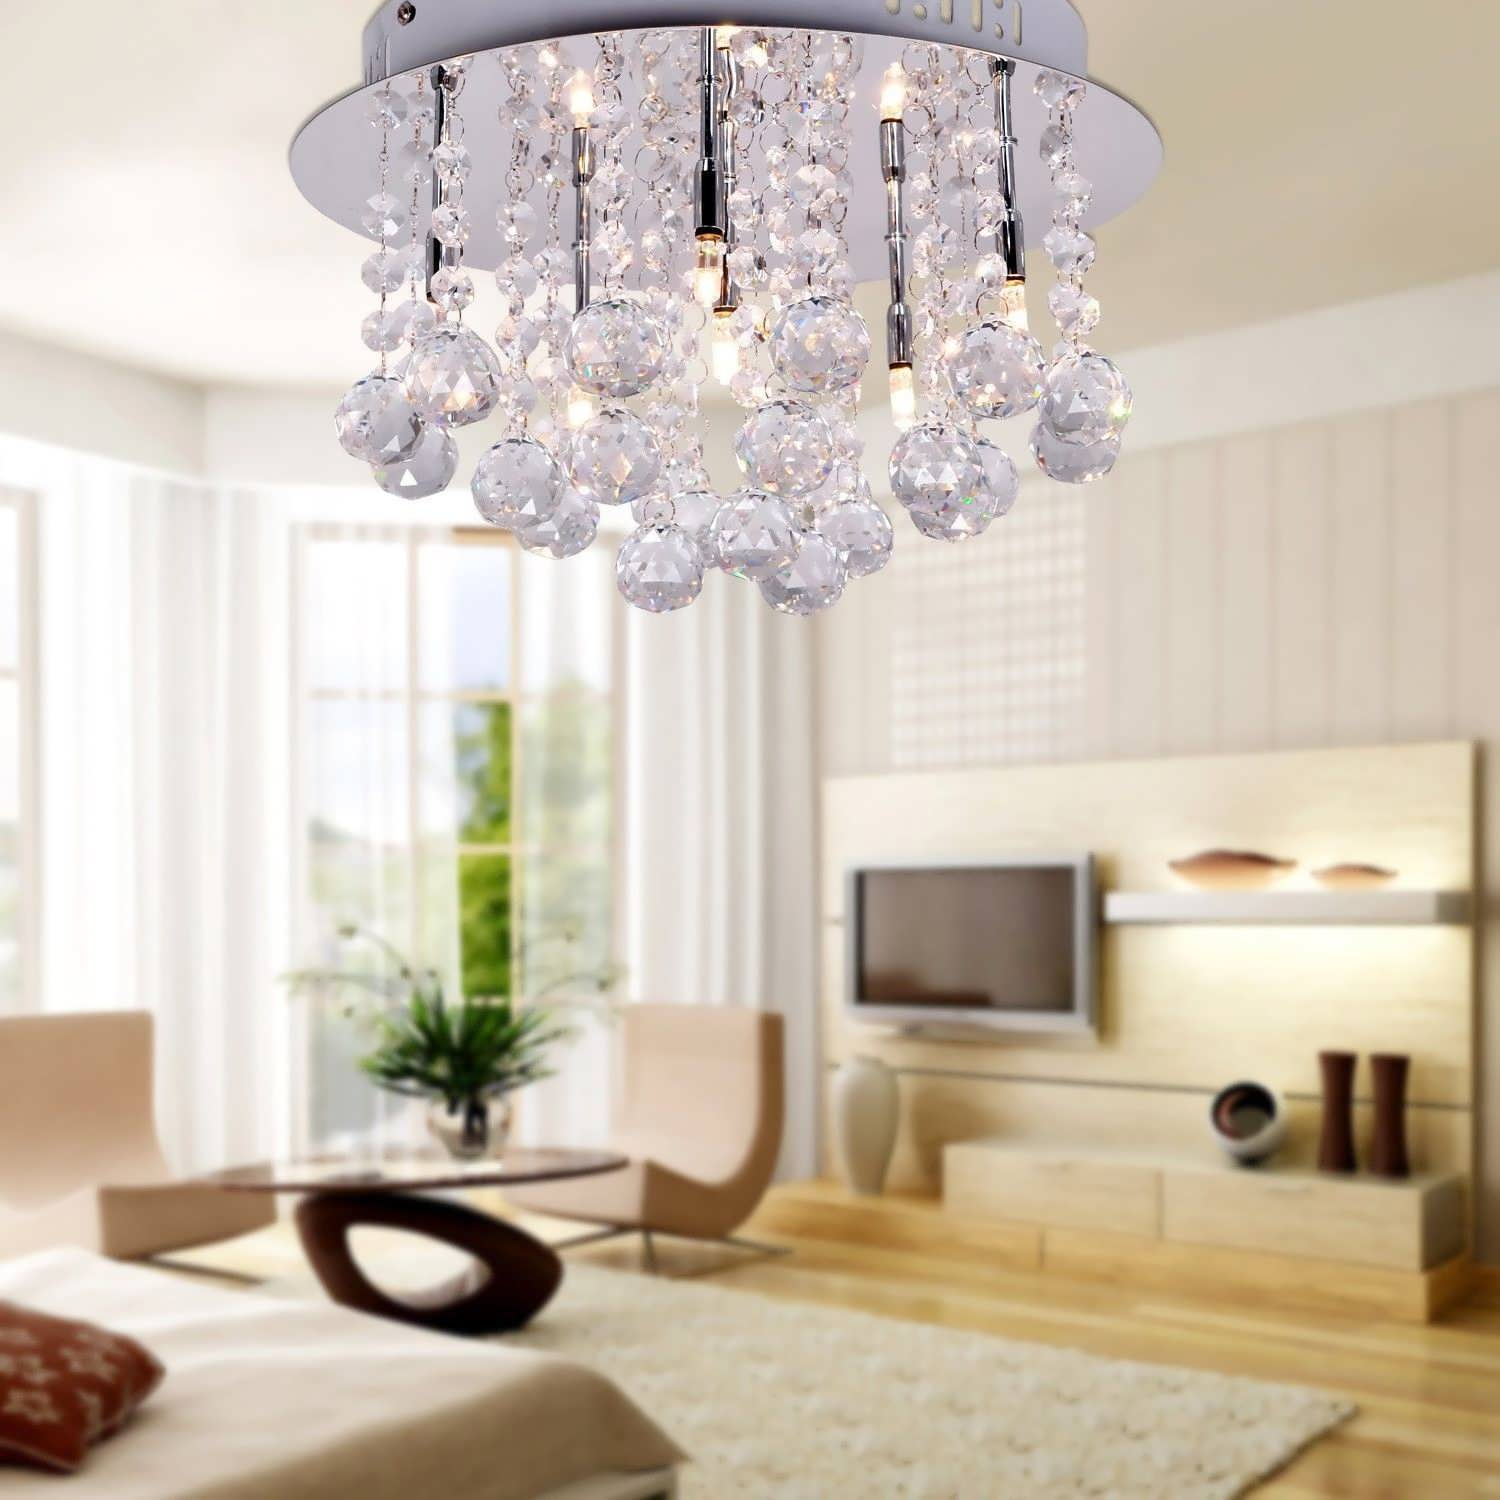 Light Fixtures Pottery Barn | West Elm Chandelier | Chandeliers Pottery Barn